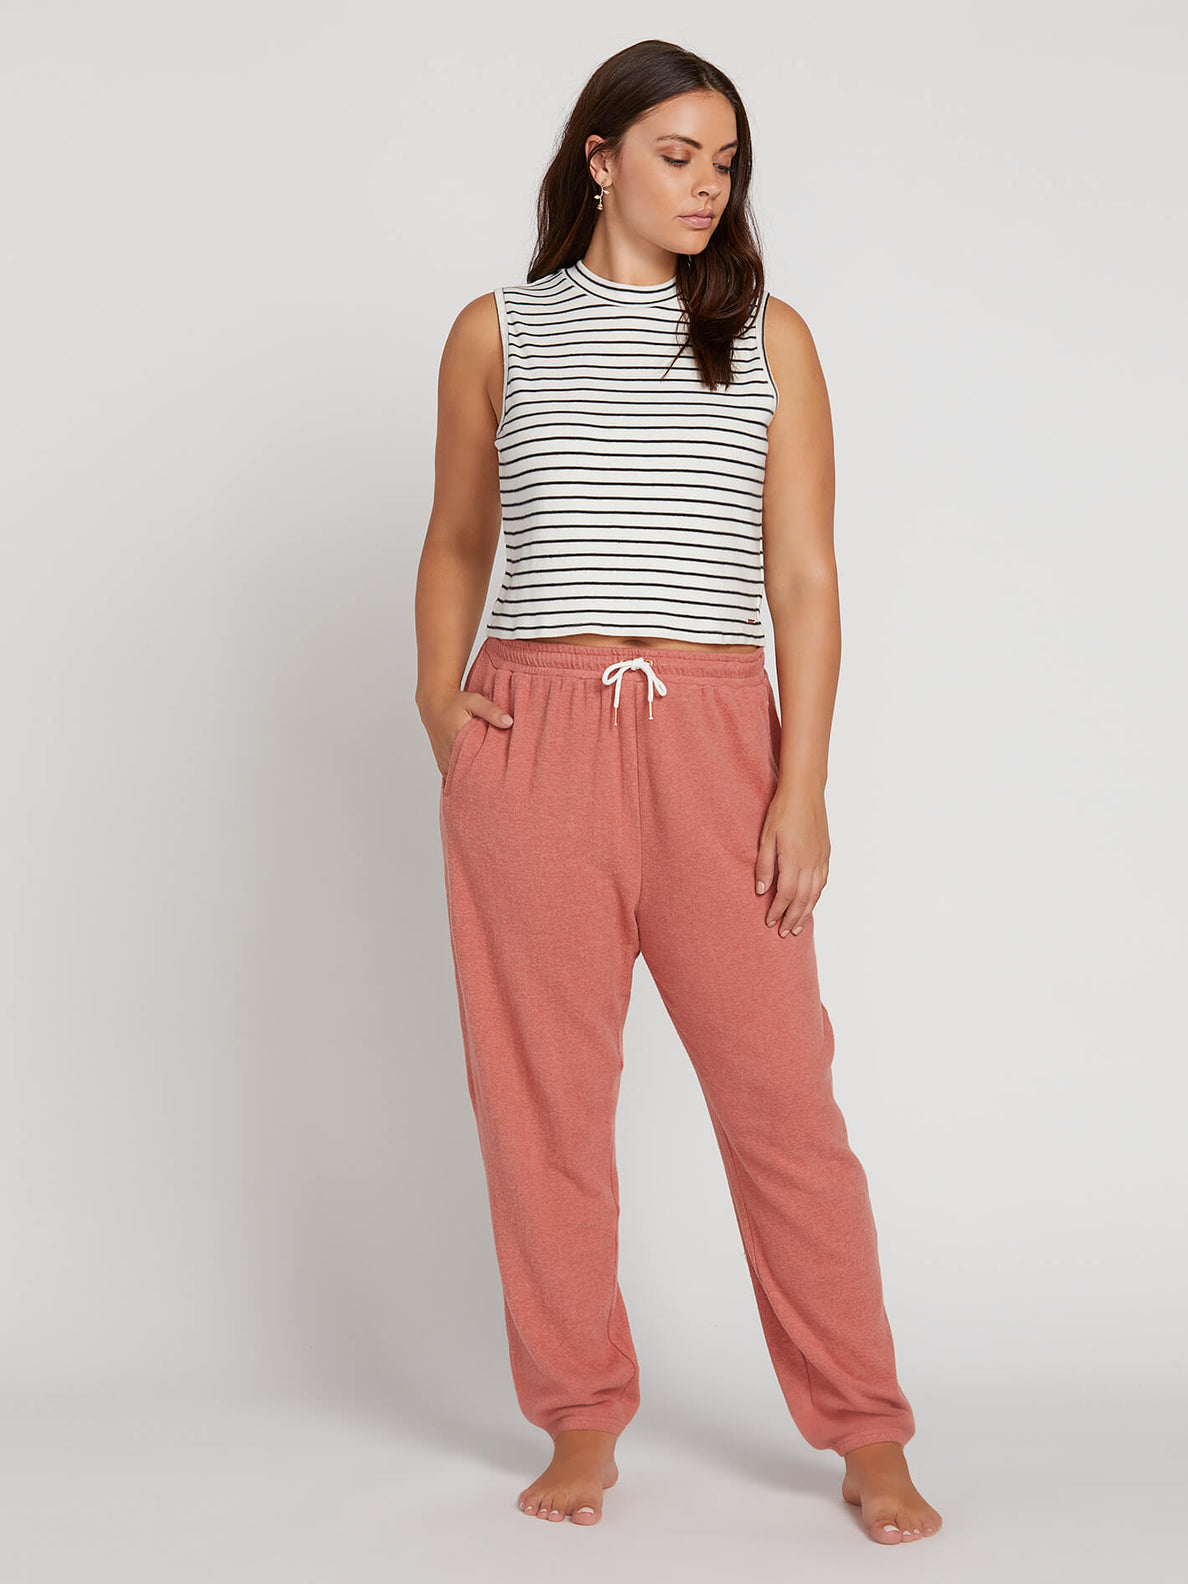 Lived In Lounge Fleece Pants In Mauve, Front Extended Size View